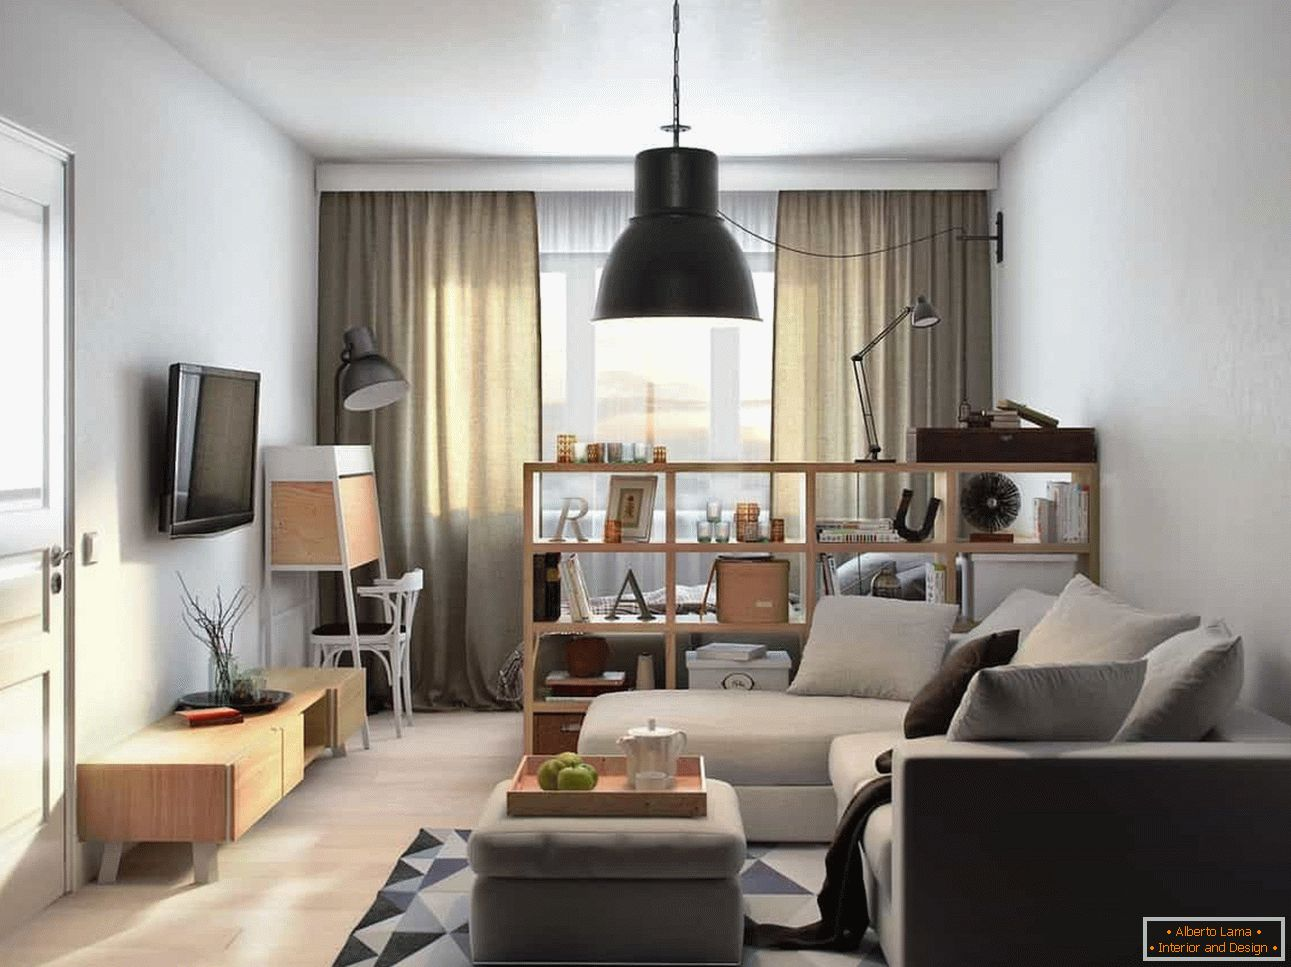 Living room and bedroom in one-room apartment